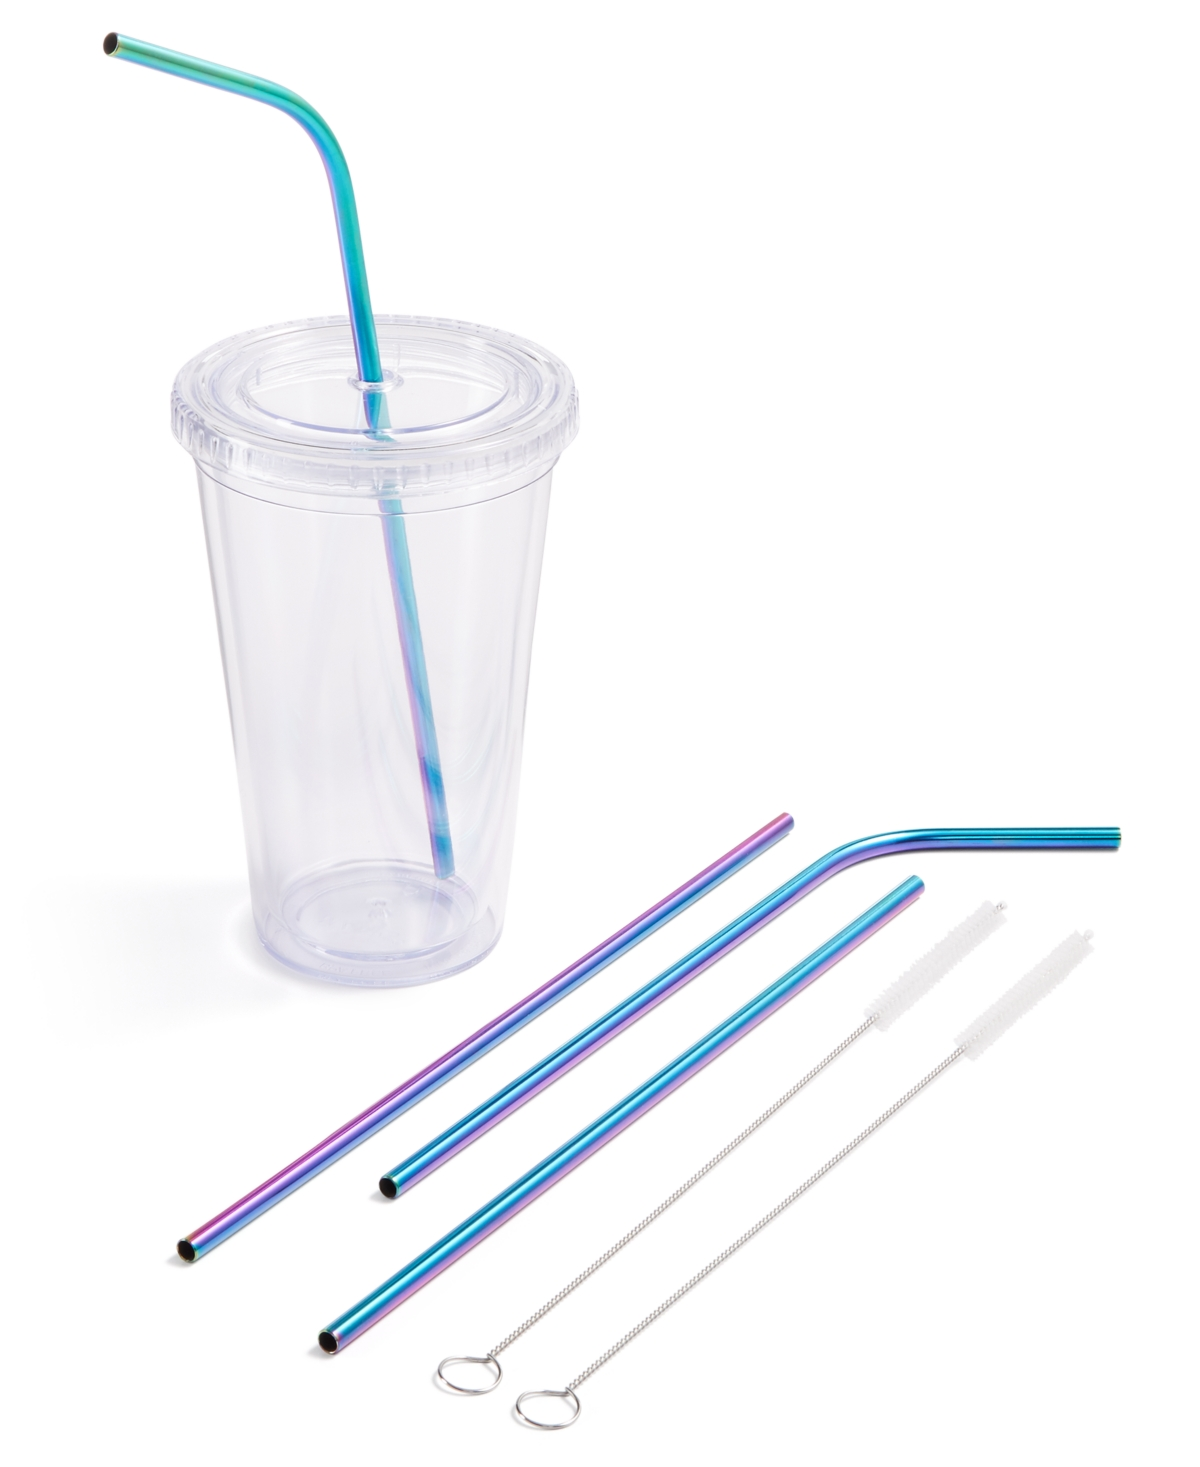 Martha Stewart Collection 6-Pc. Reusable Straw & Cleaning Brush Set, Created for Macy's